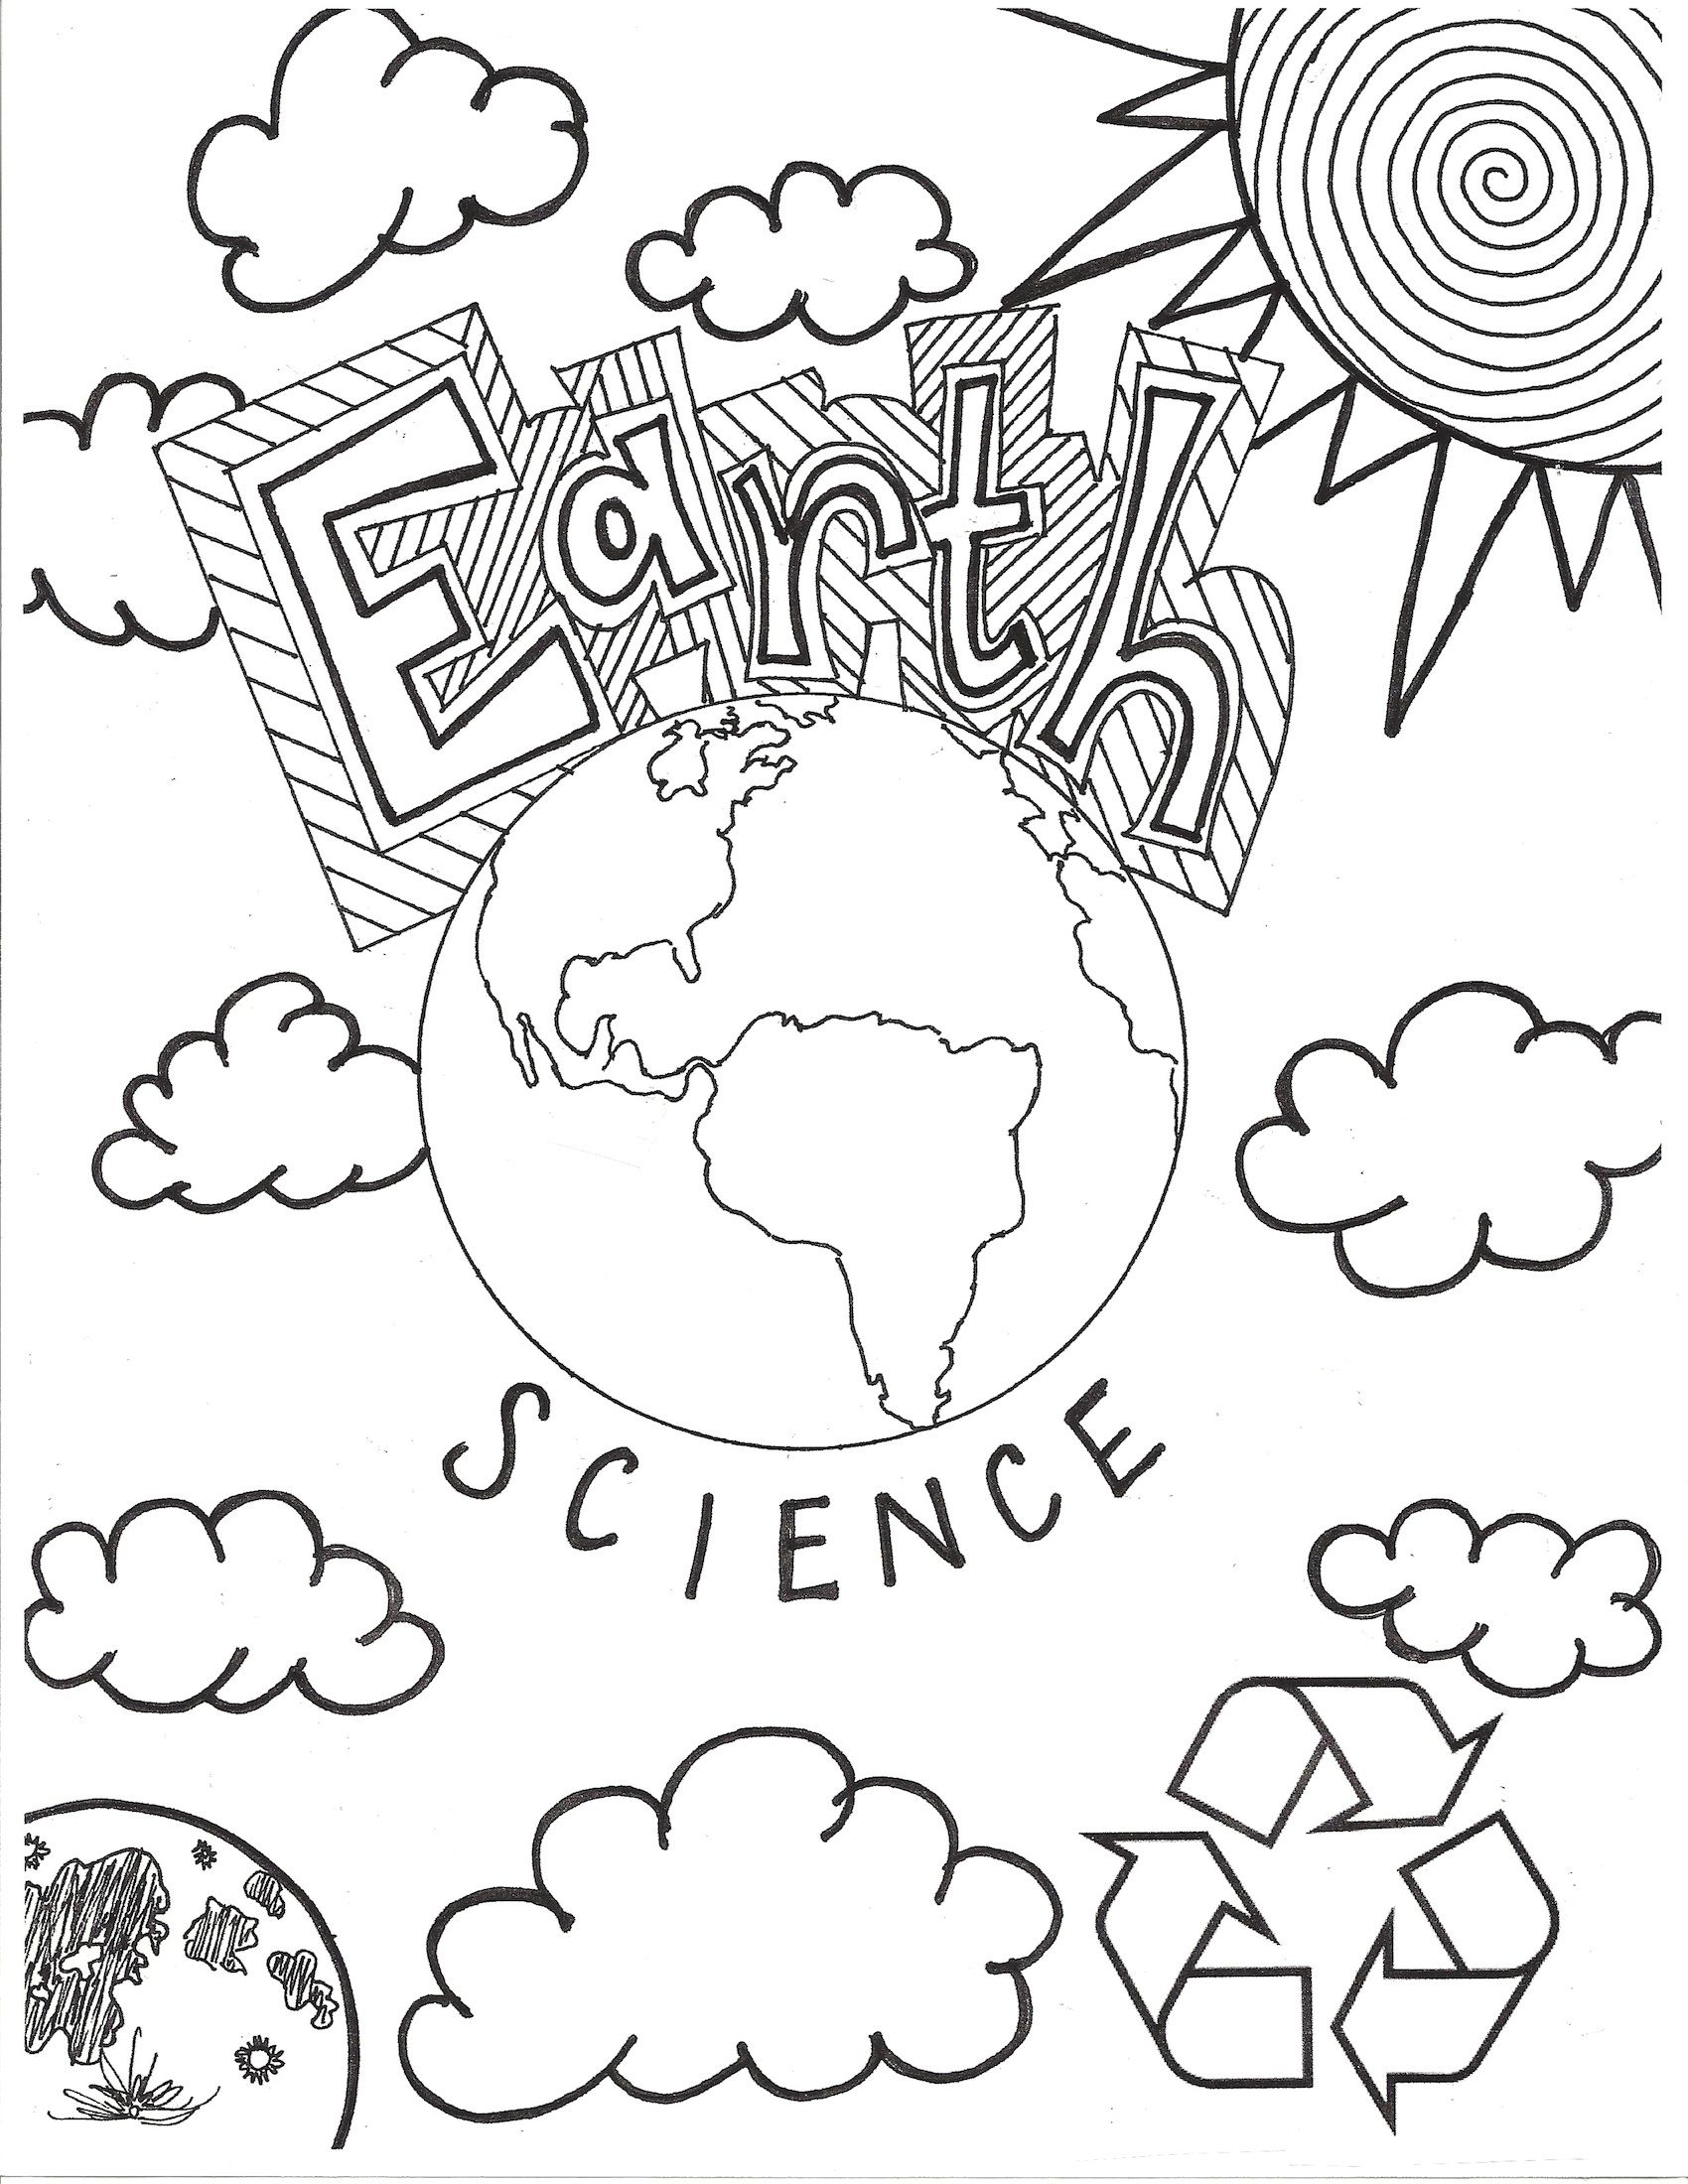 science energy coloring pages - photo#8